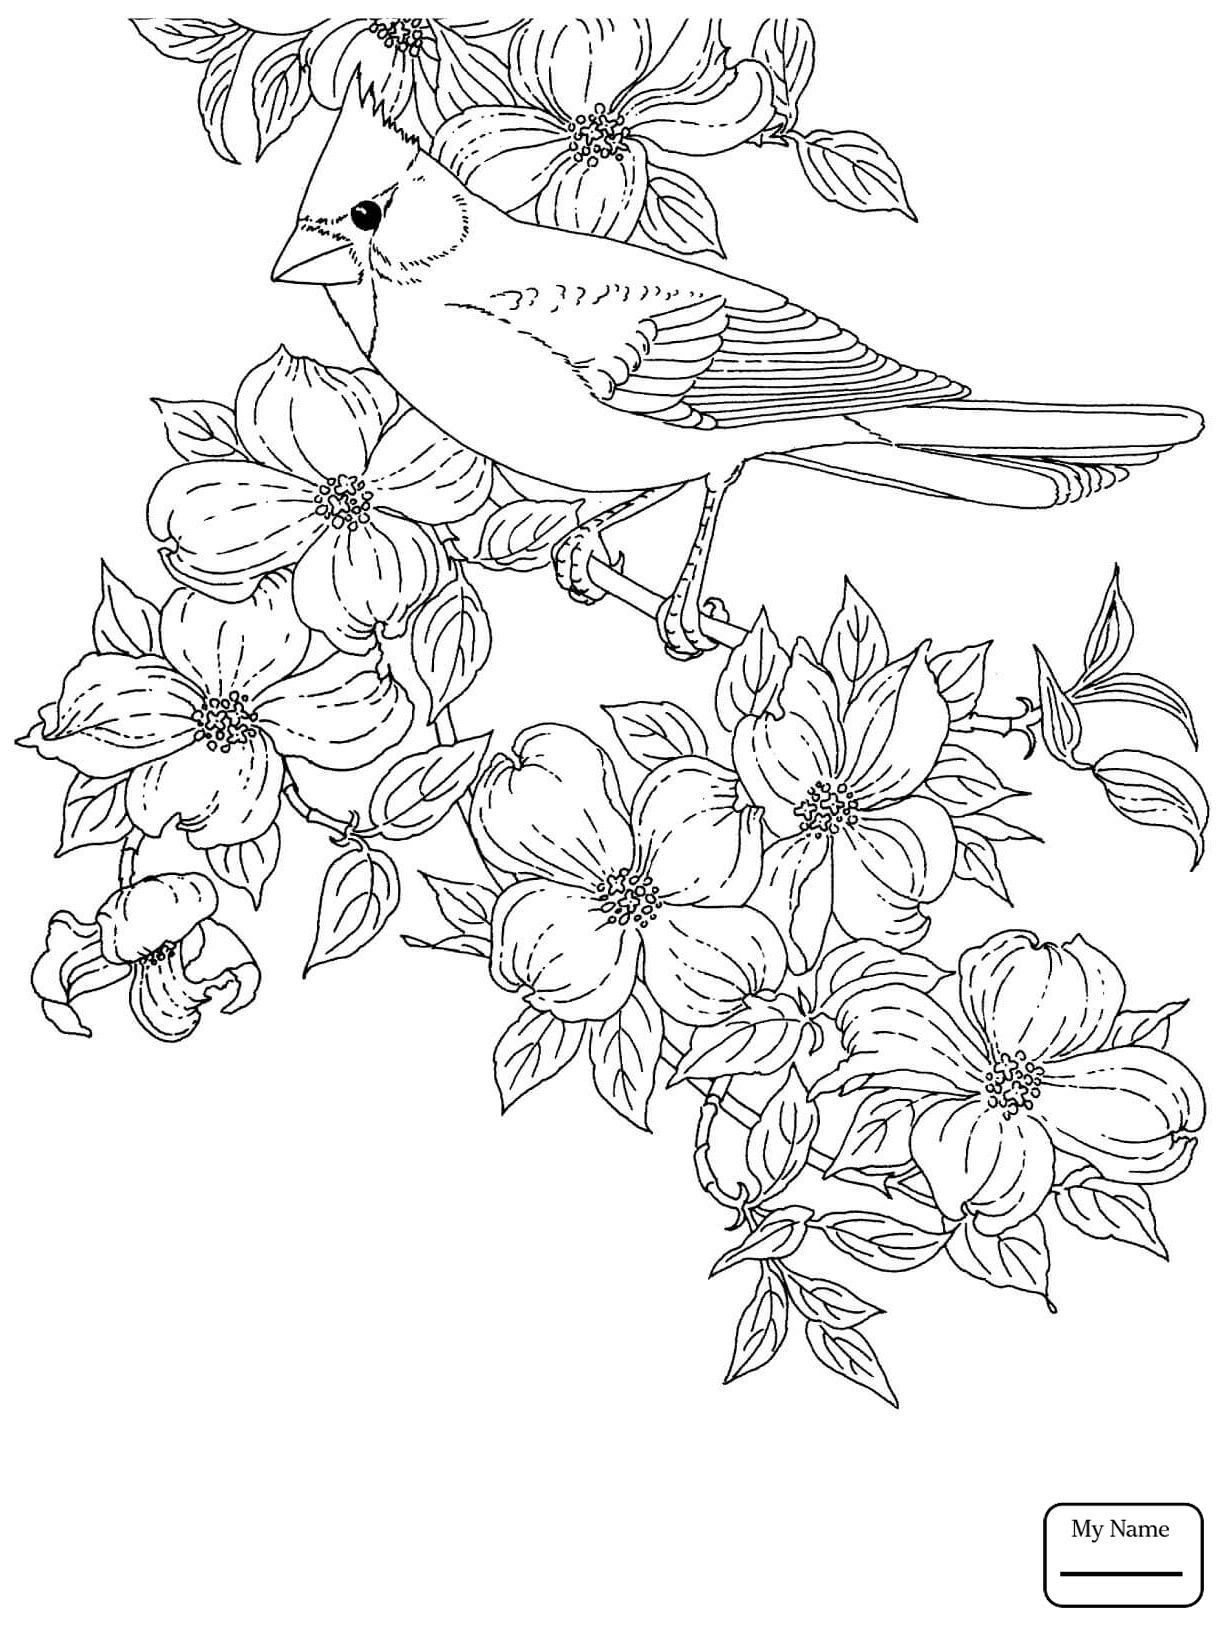 North Carolina State Symbols Coloring Pages At Getdrawings